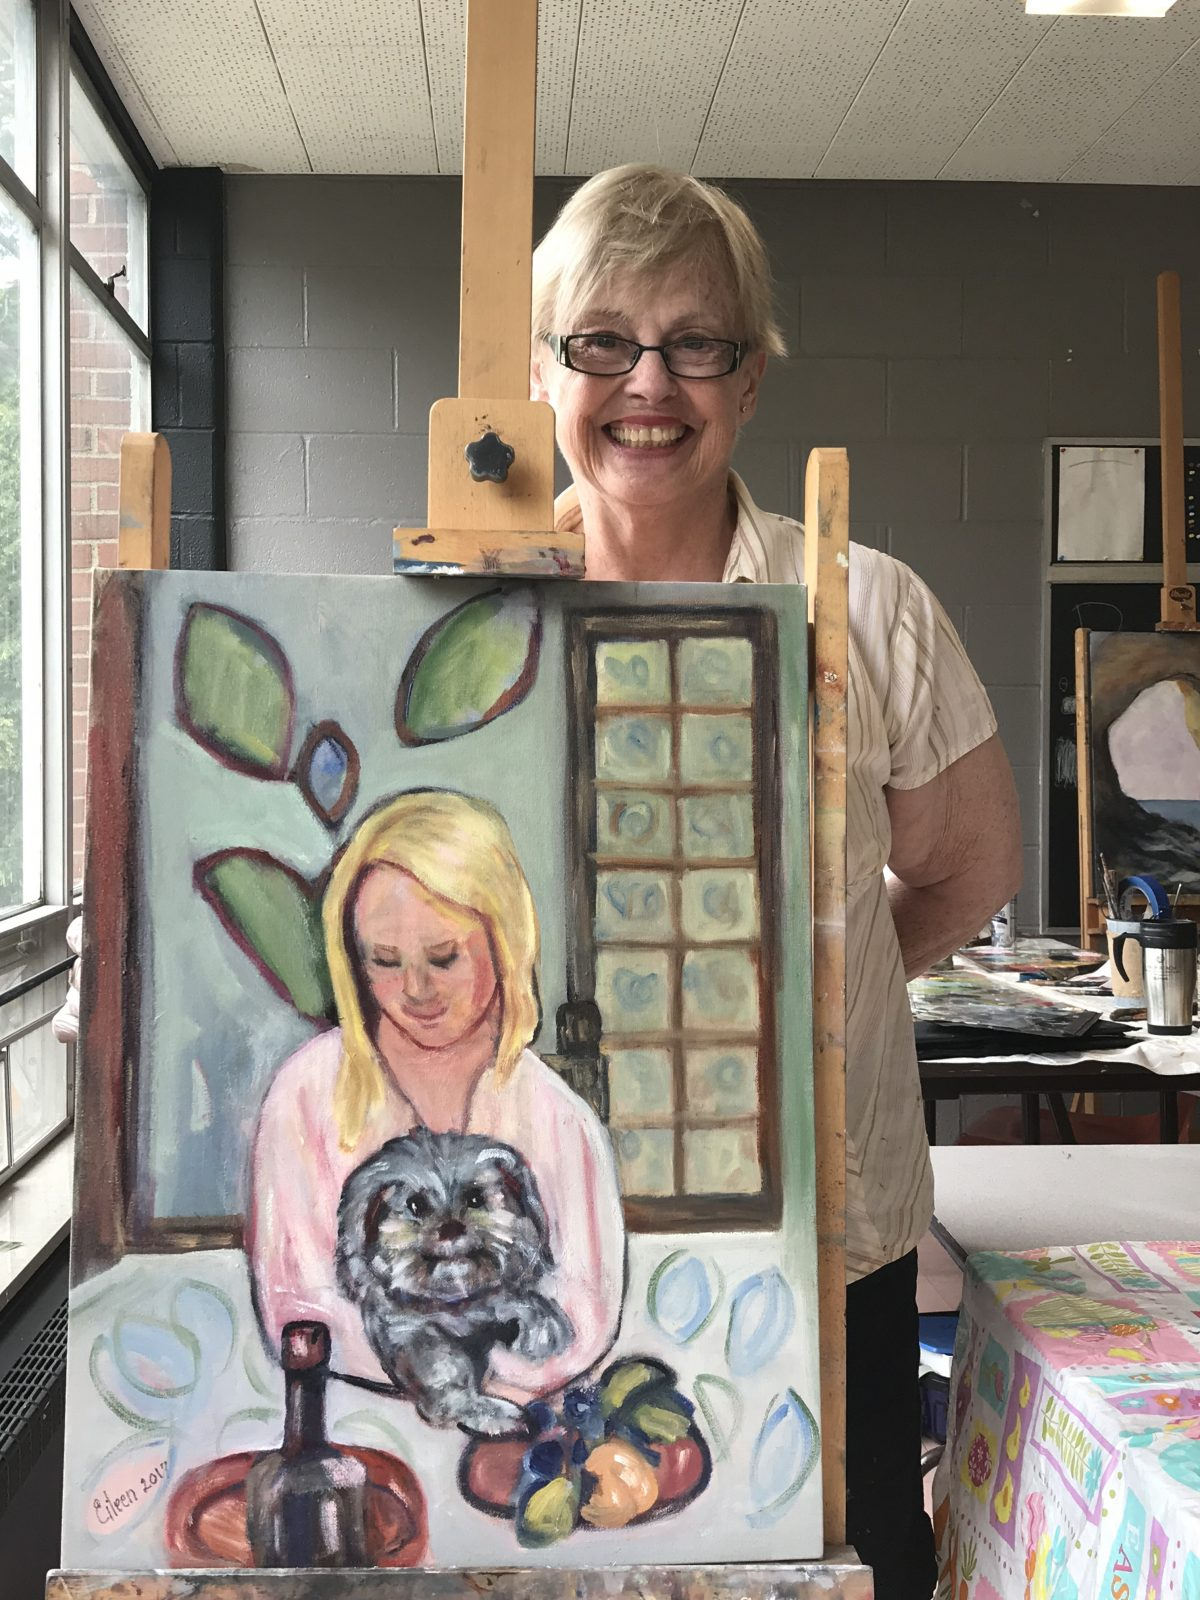 Meet our artist extraordinaire, Eileen Vernon